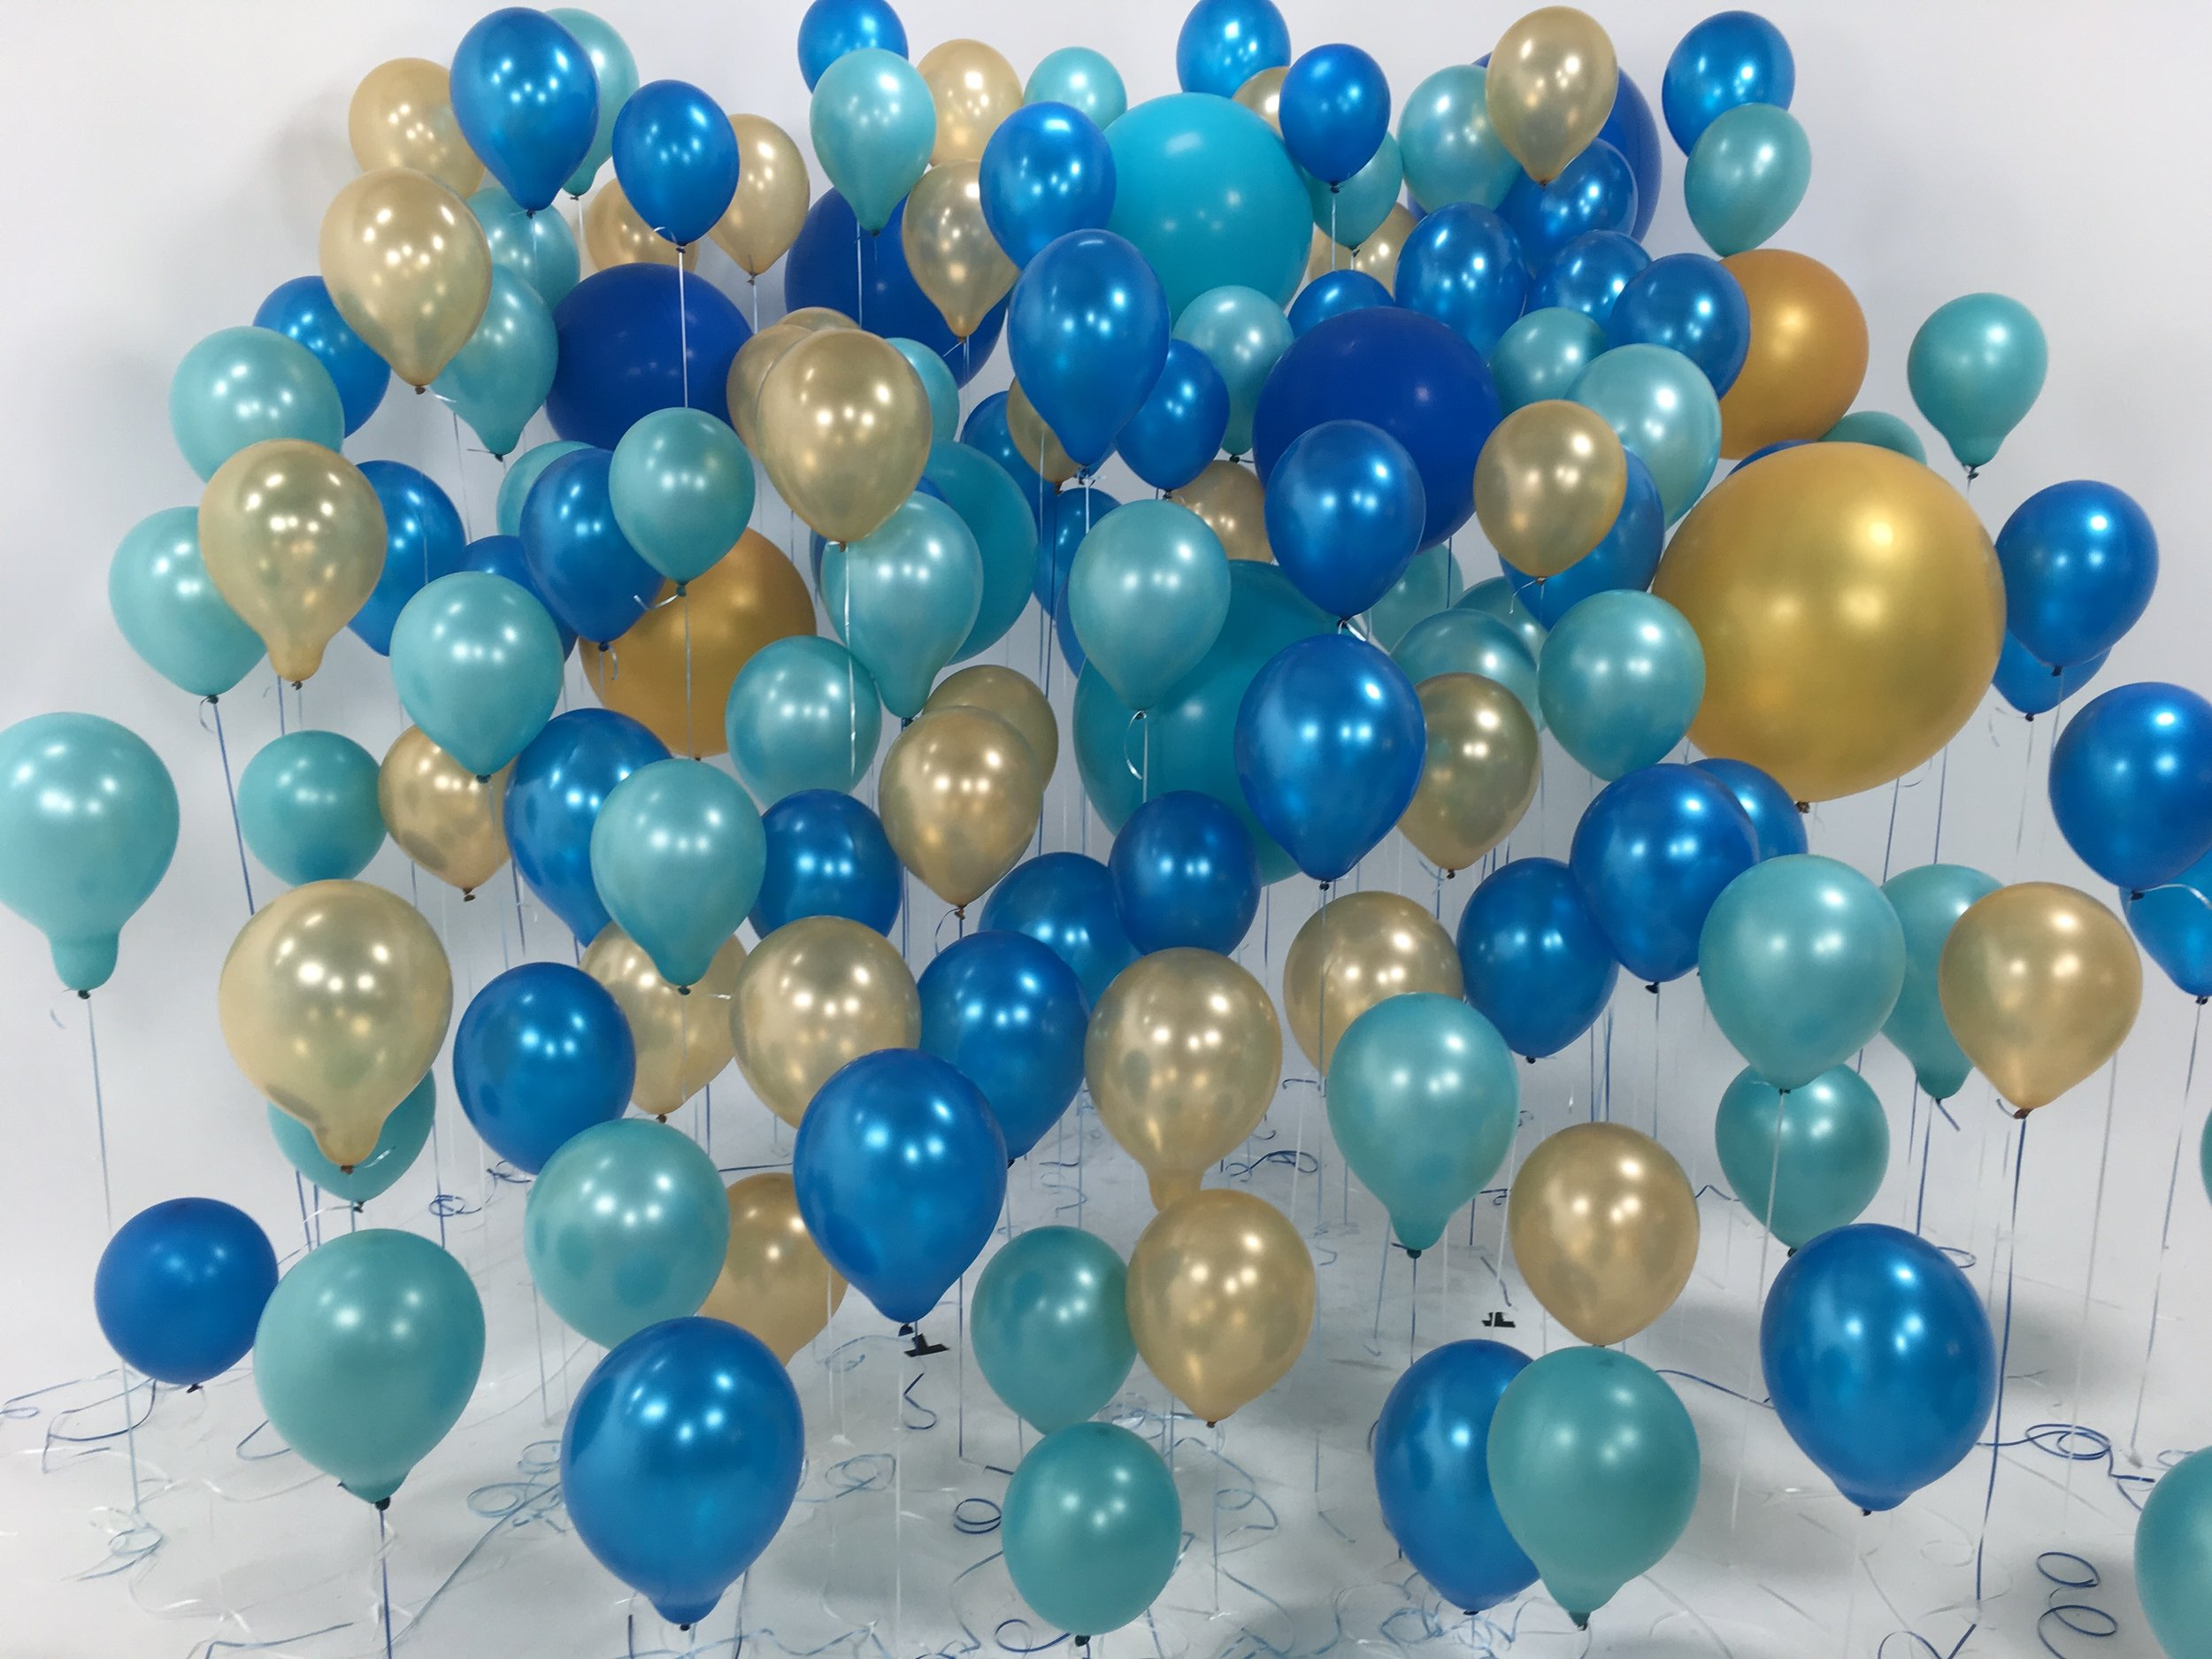 Only one set up of many, full balloon set up